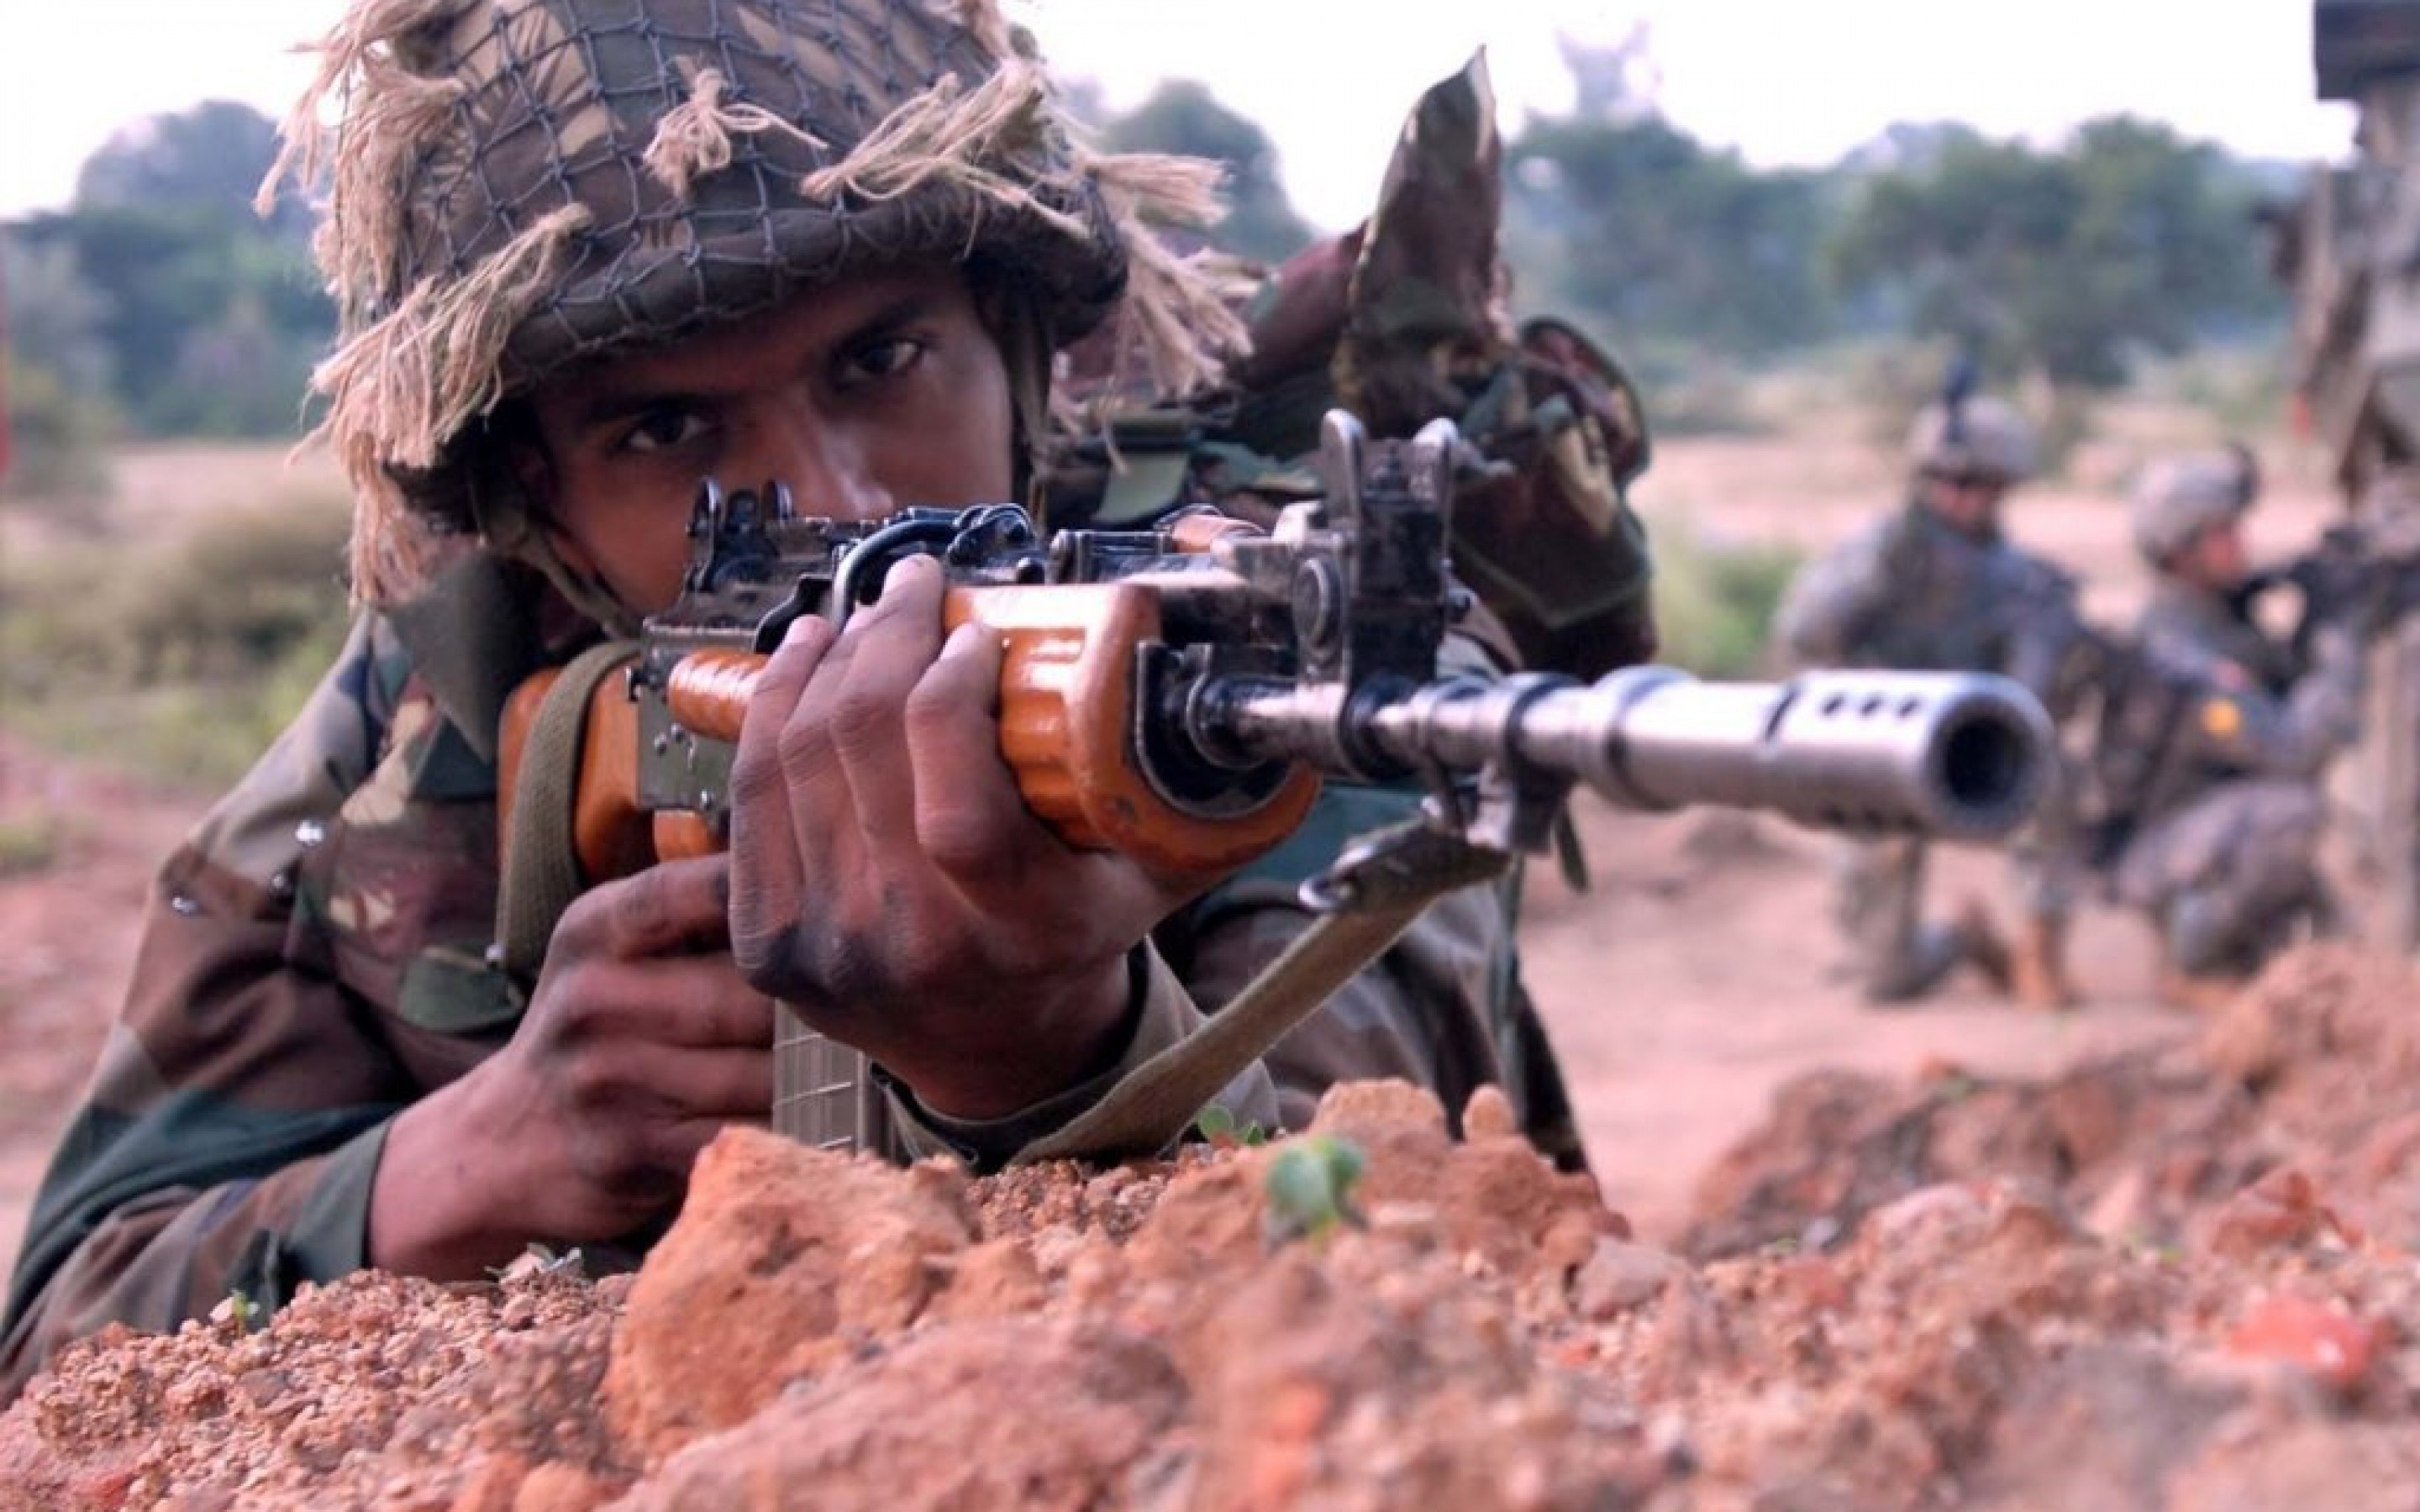 Indian Army HD Wallpaper – HDWallpapersin.com | HD Wallpapers for .